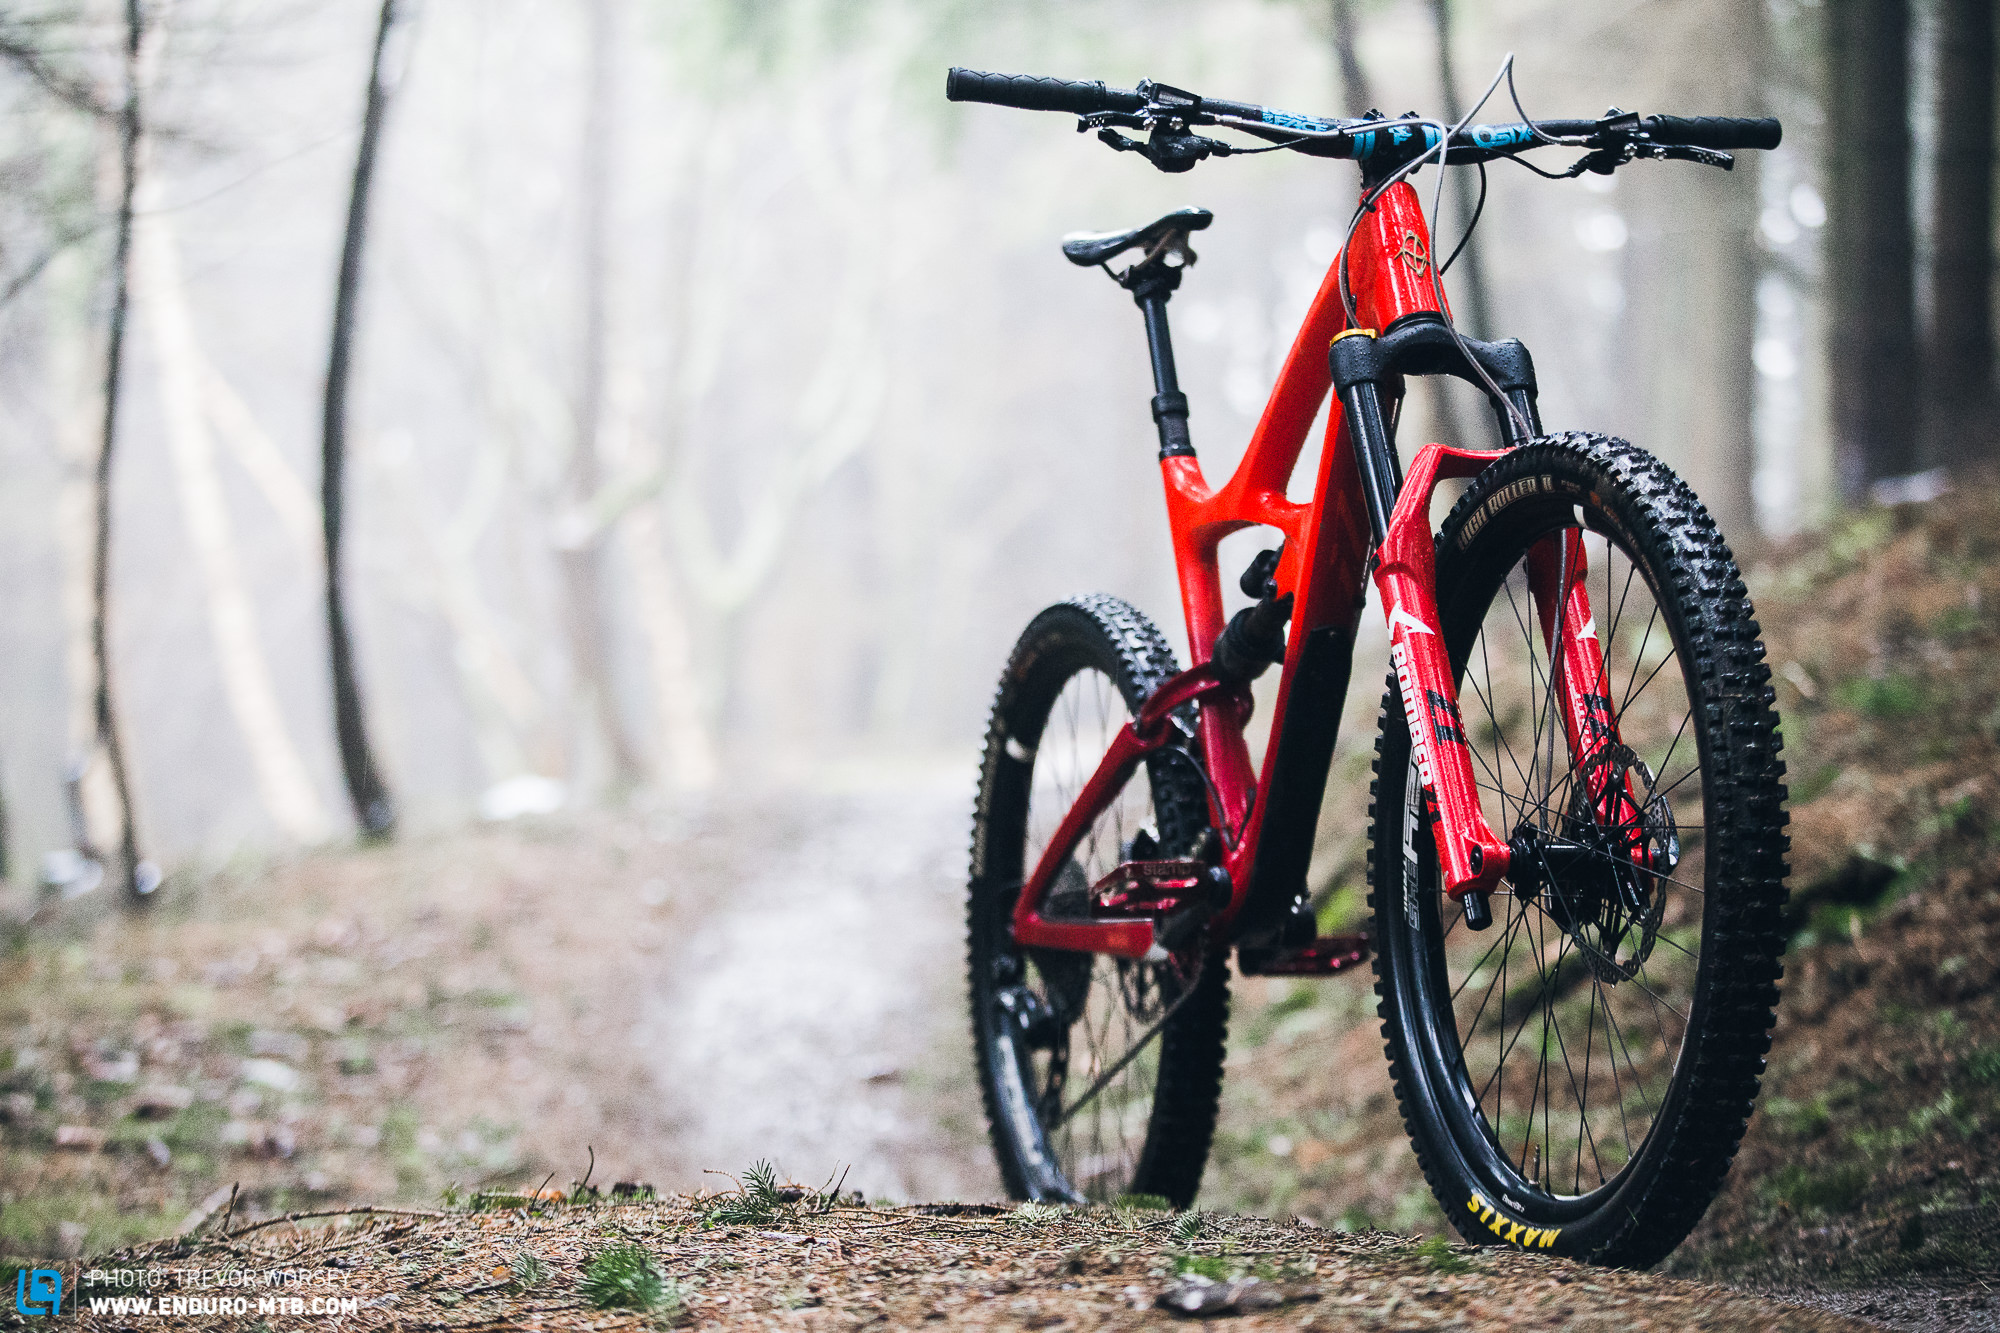 First Ride Review: The legendary Marzocchi Bomber Z1 is back